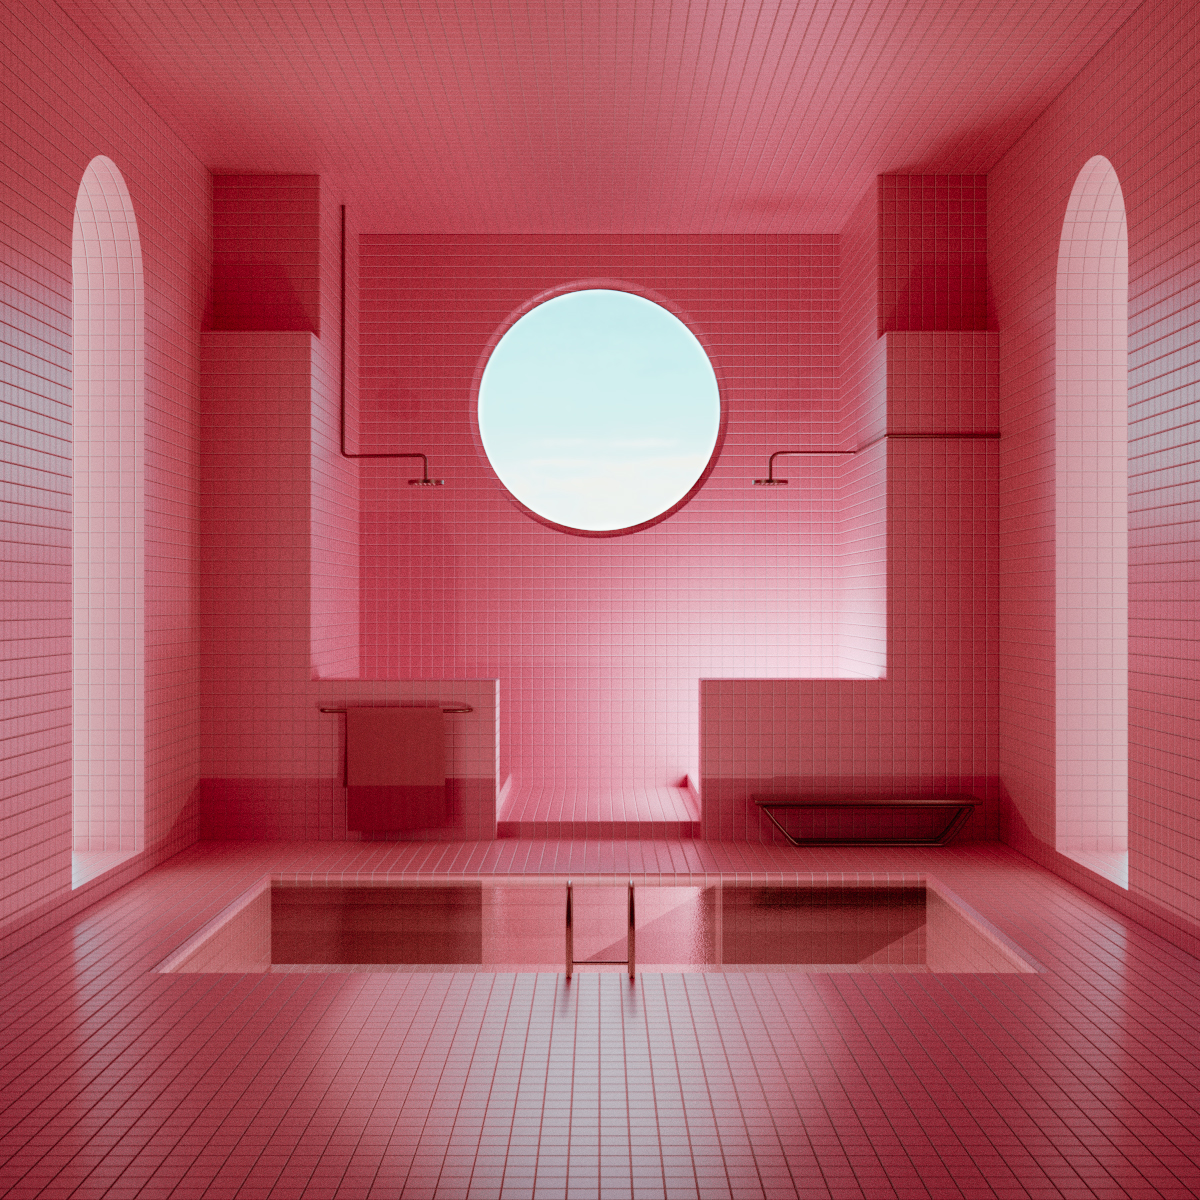 Red-Room-(1-of-1)-3.jpg